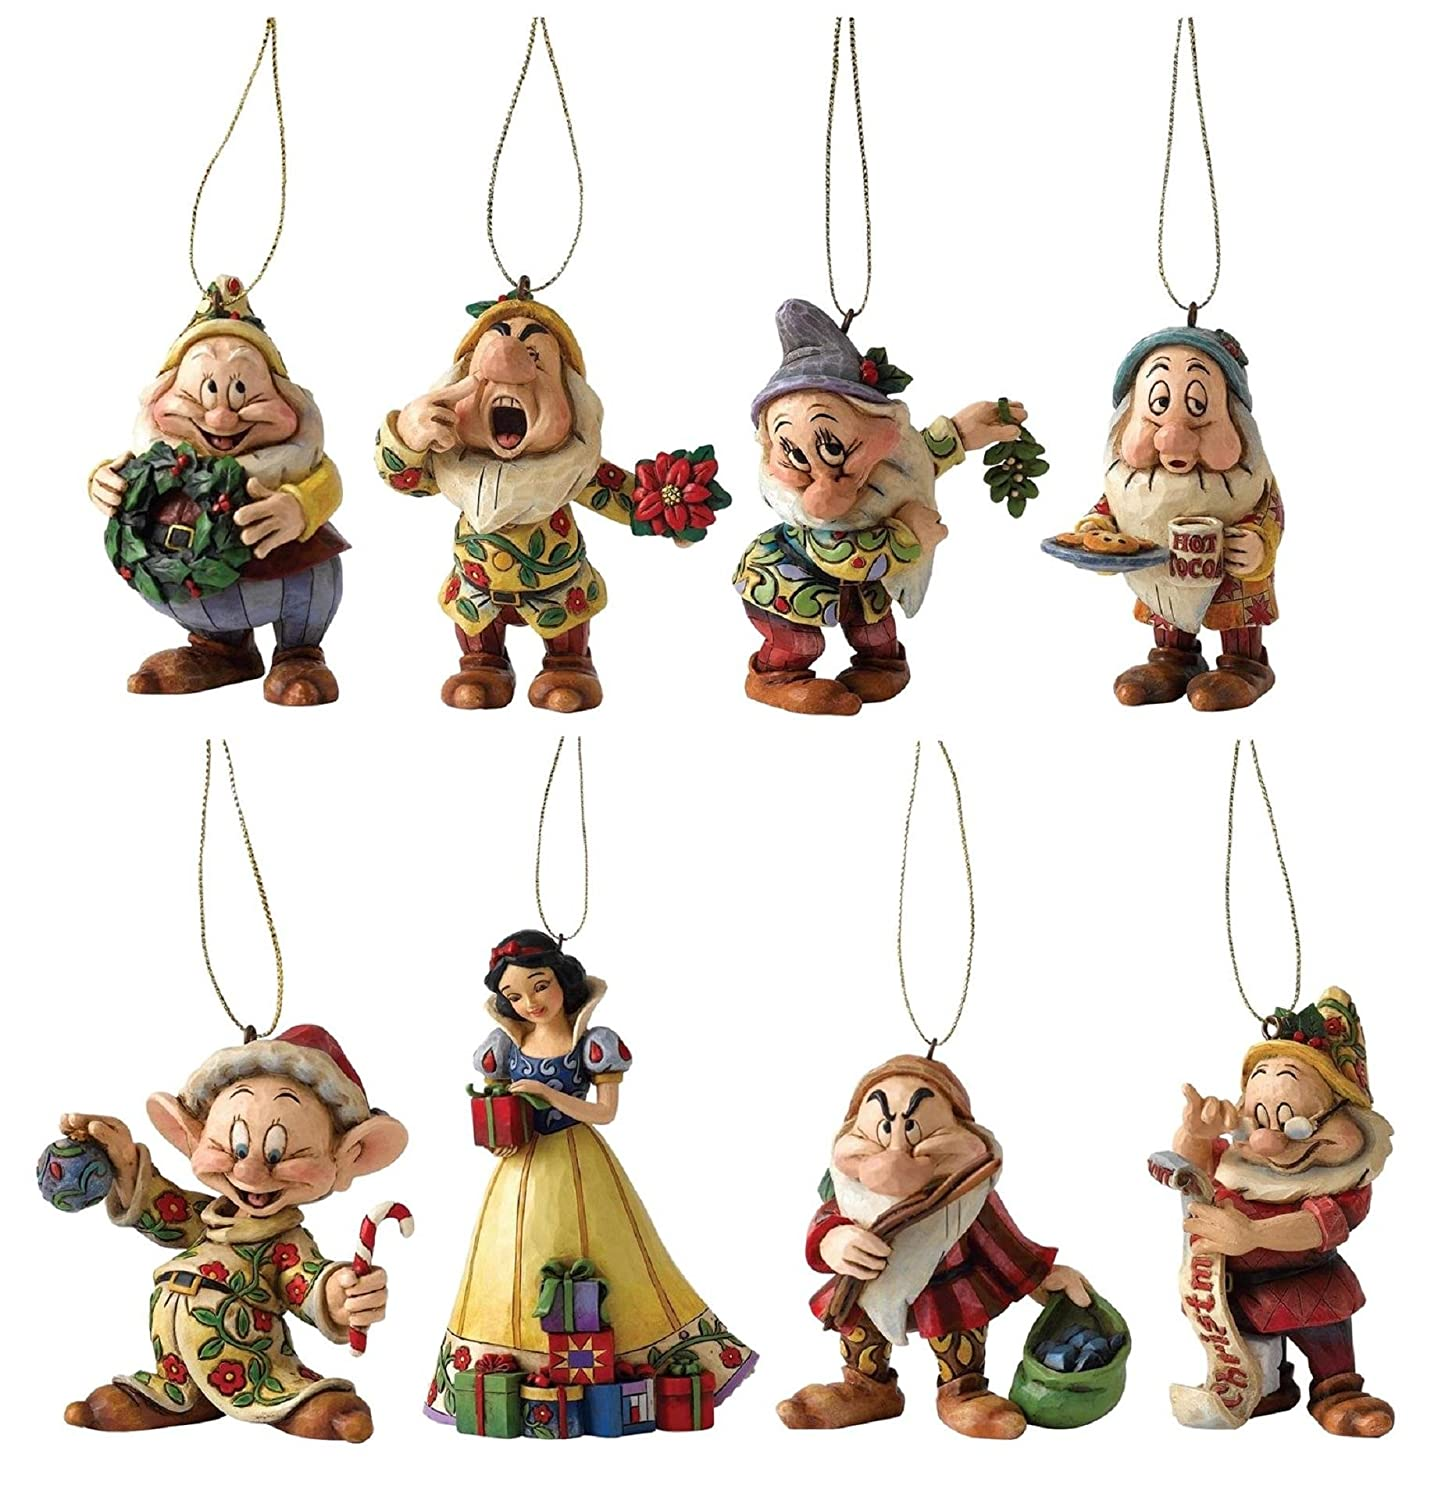 disney showcase collection snow white the seven dwarfs christmas tree decorations by jim shore amazoncouk kitchen home